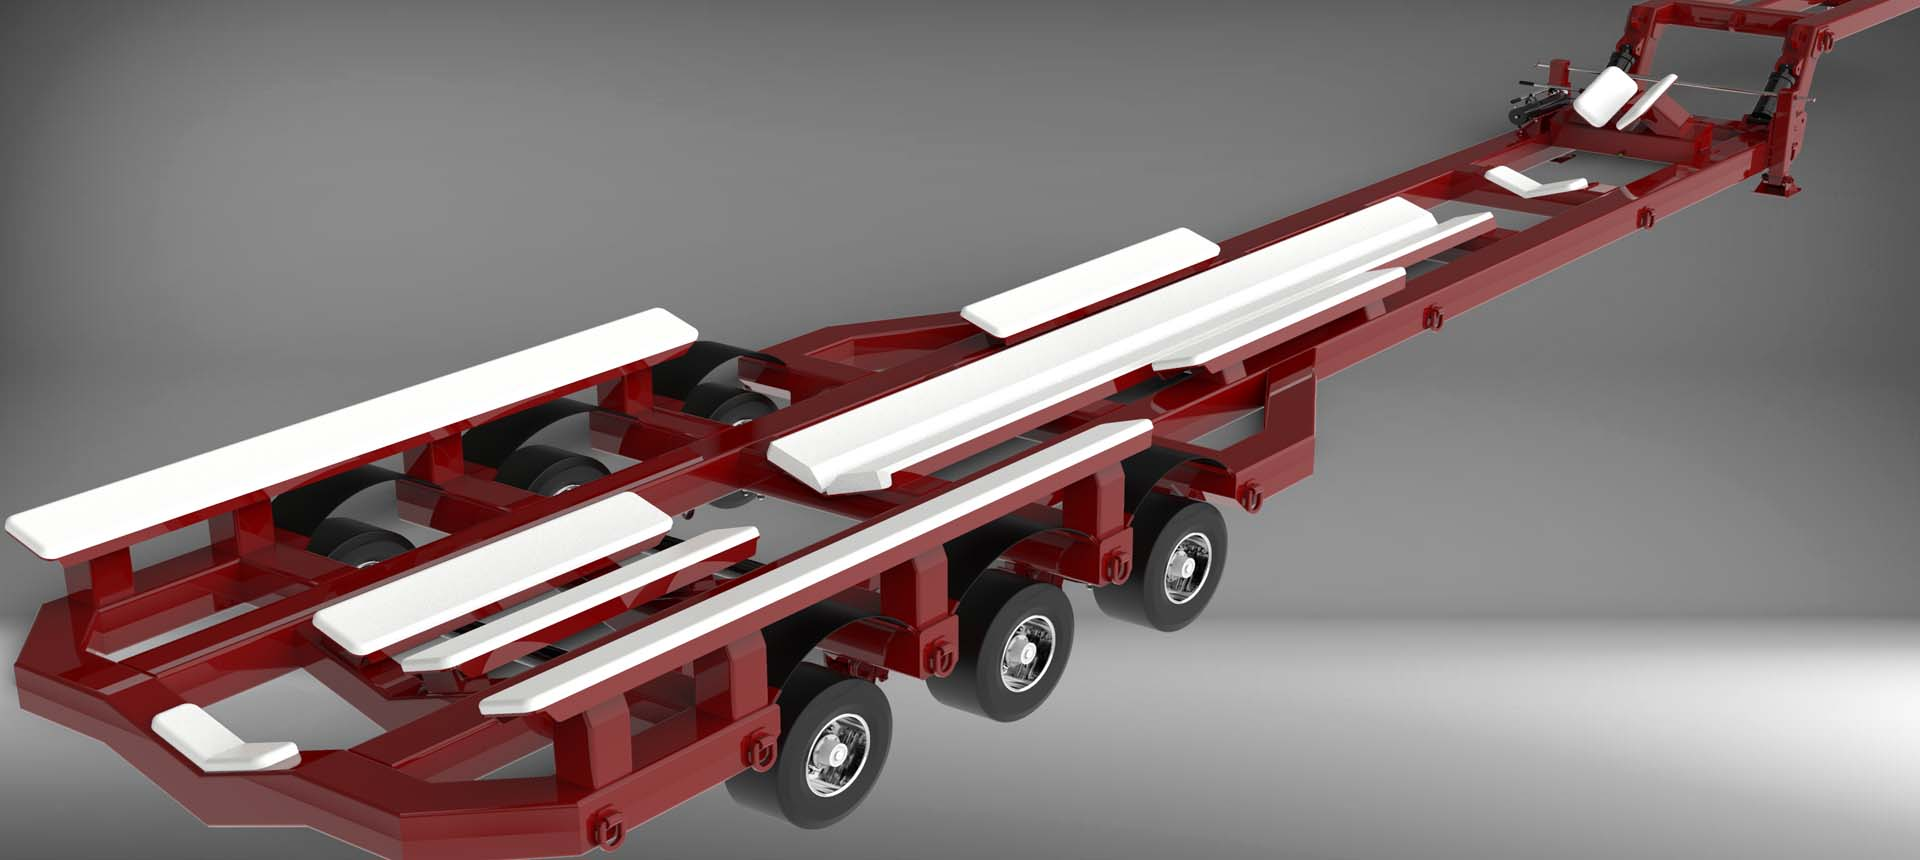 Berryer Design Industrial Automotive Trailer